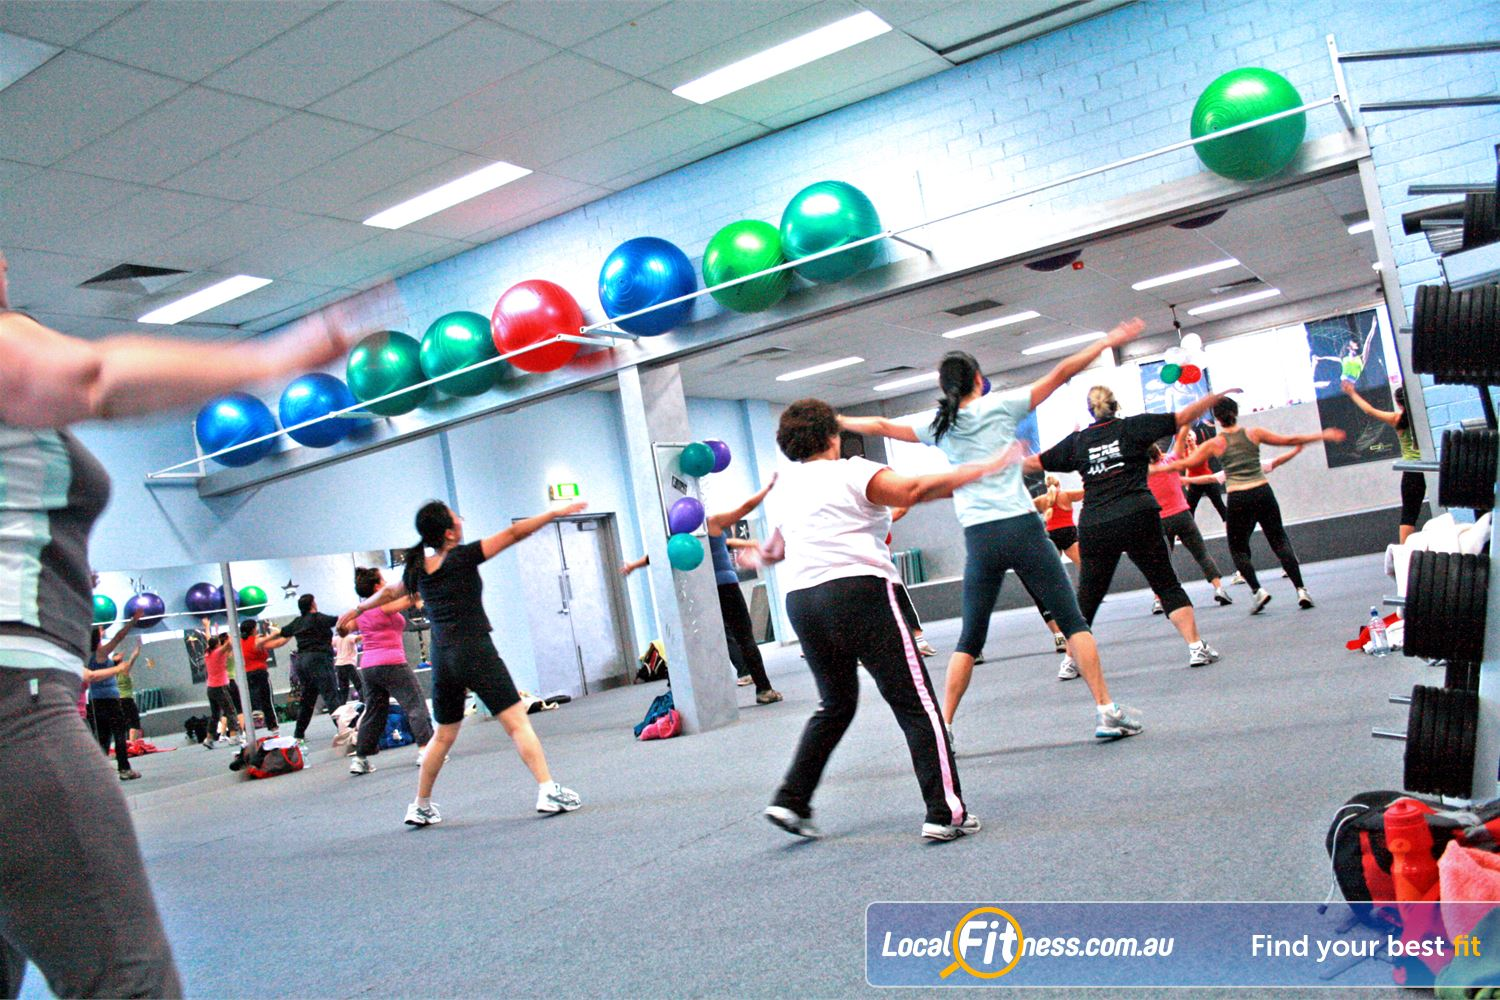 Reservoir Leisure Centre Near Heidelberg Rgh Enjoy the many Reservoir group fitness classes running daily.